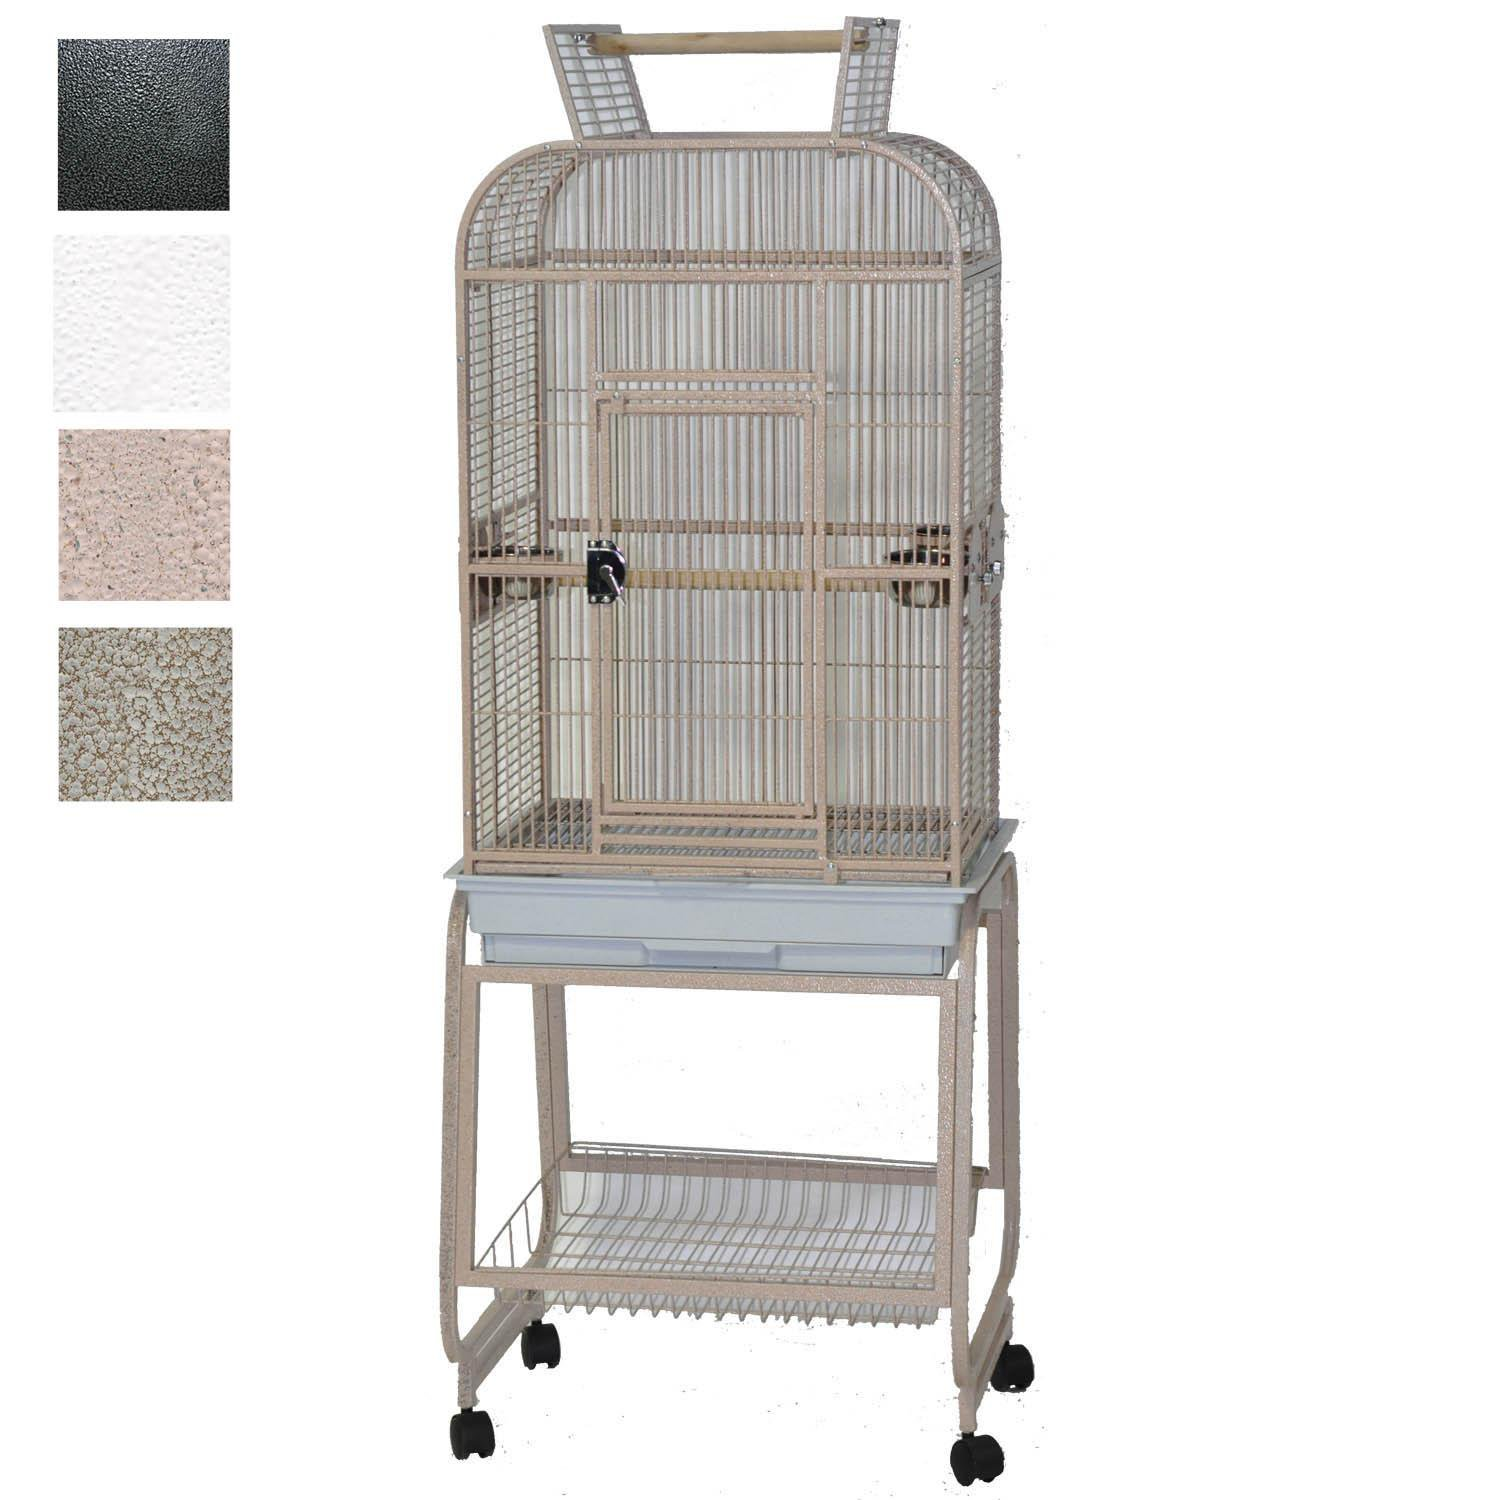 AE Cage Company Play Top Bird Cage with Plastic Base 22 L X 17 W X 66 H Platinum 22 IN Gray